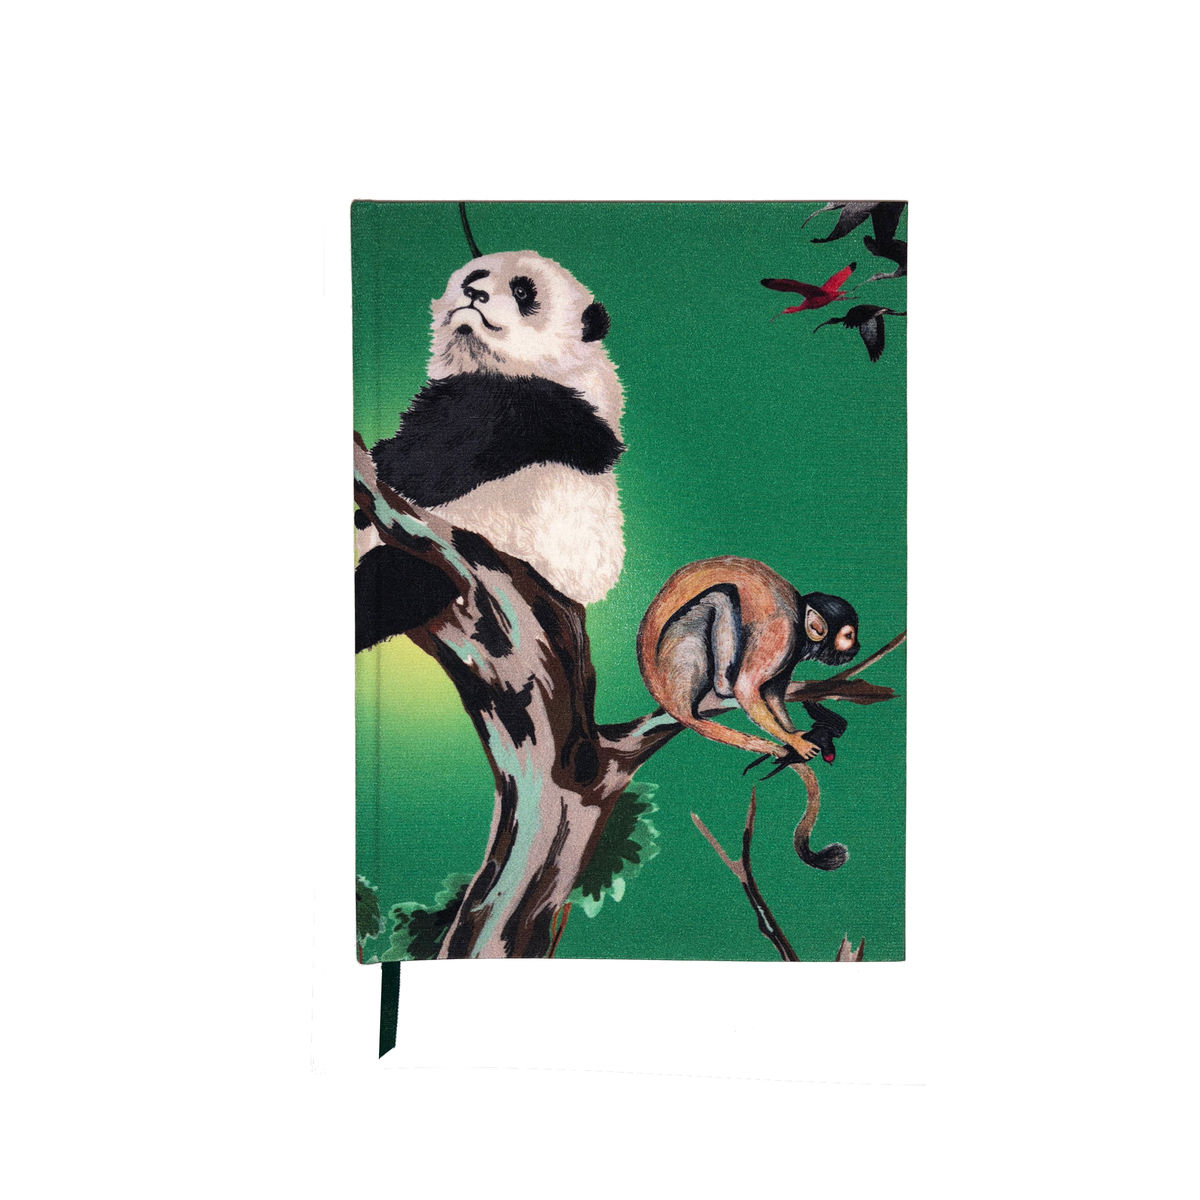 Pandas Palace Print A5 note book - product images  of